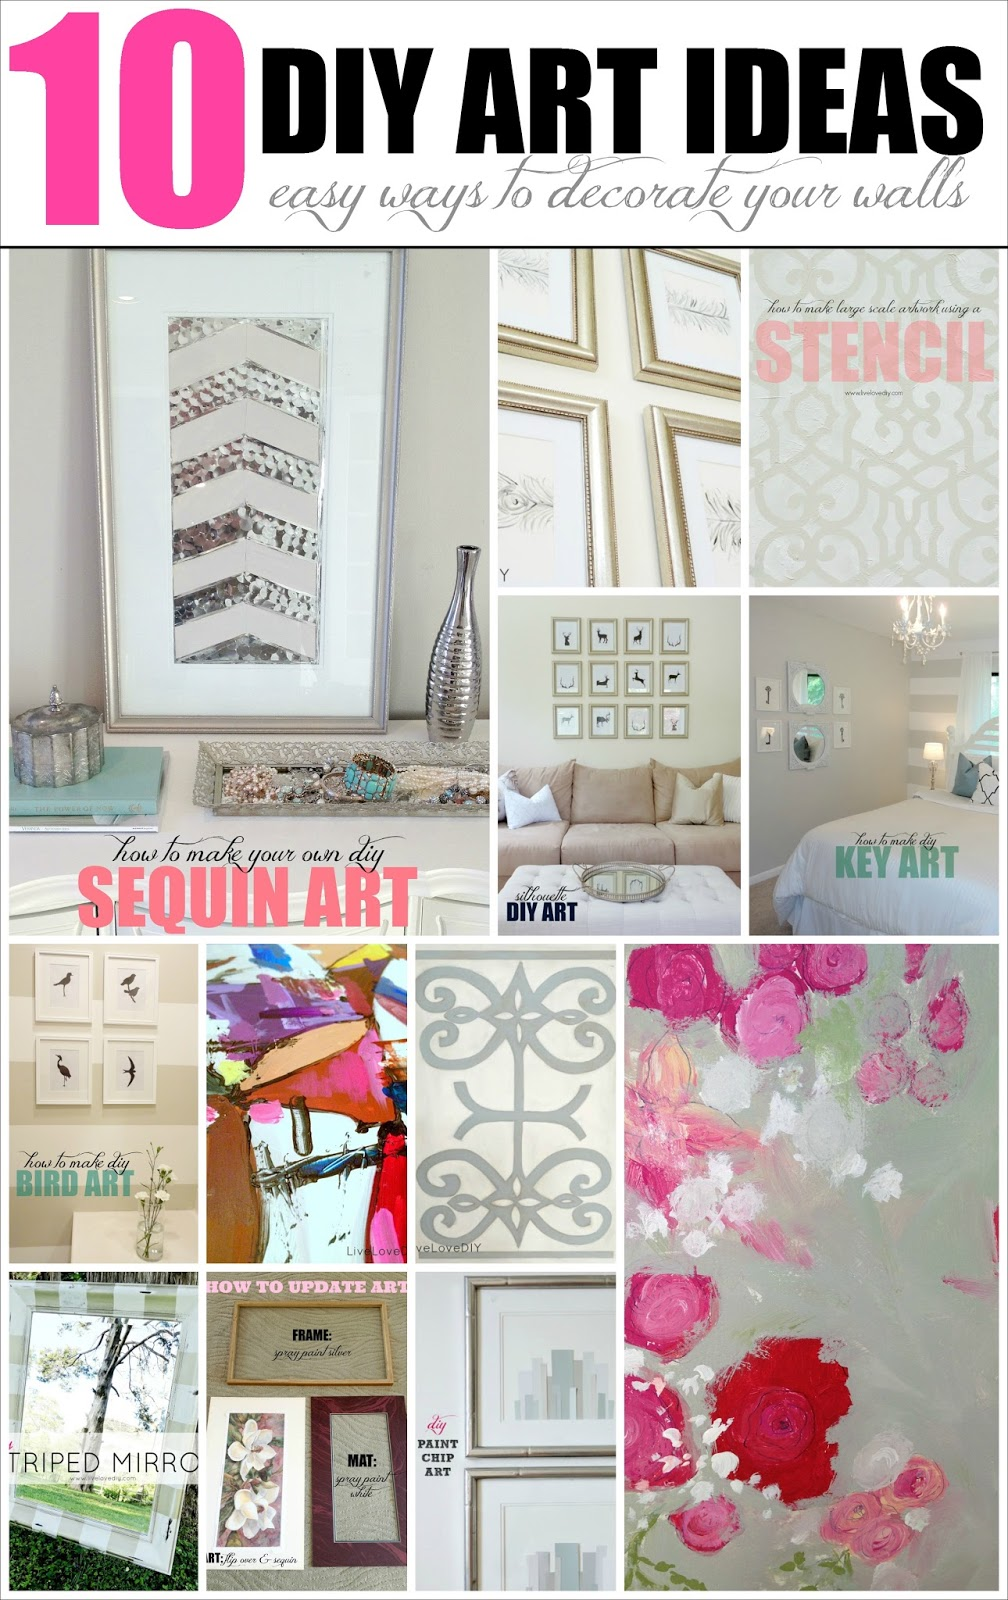 Diy Wall Art Ideas - Girl Room Design Ideas